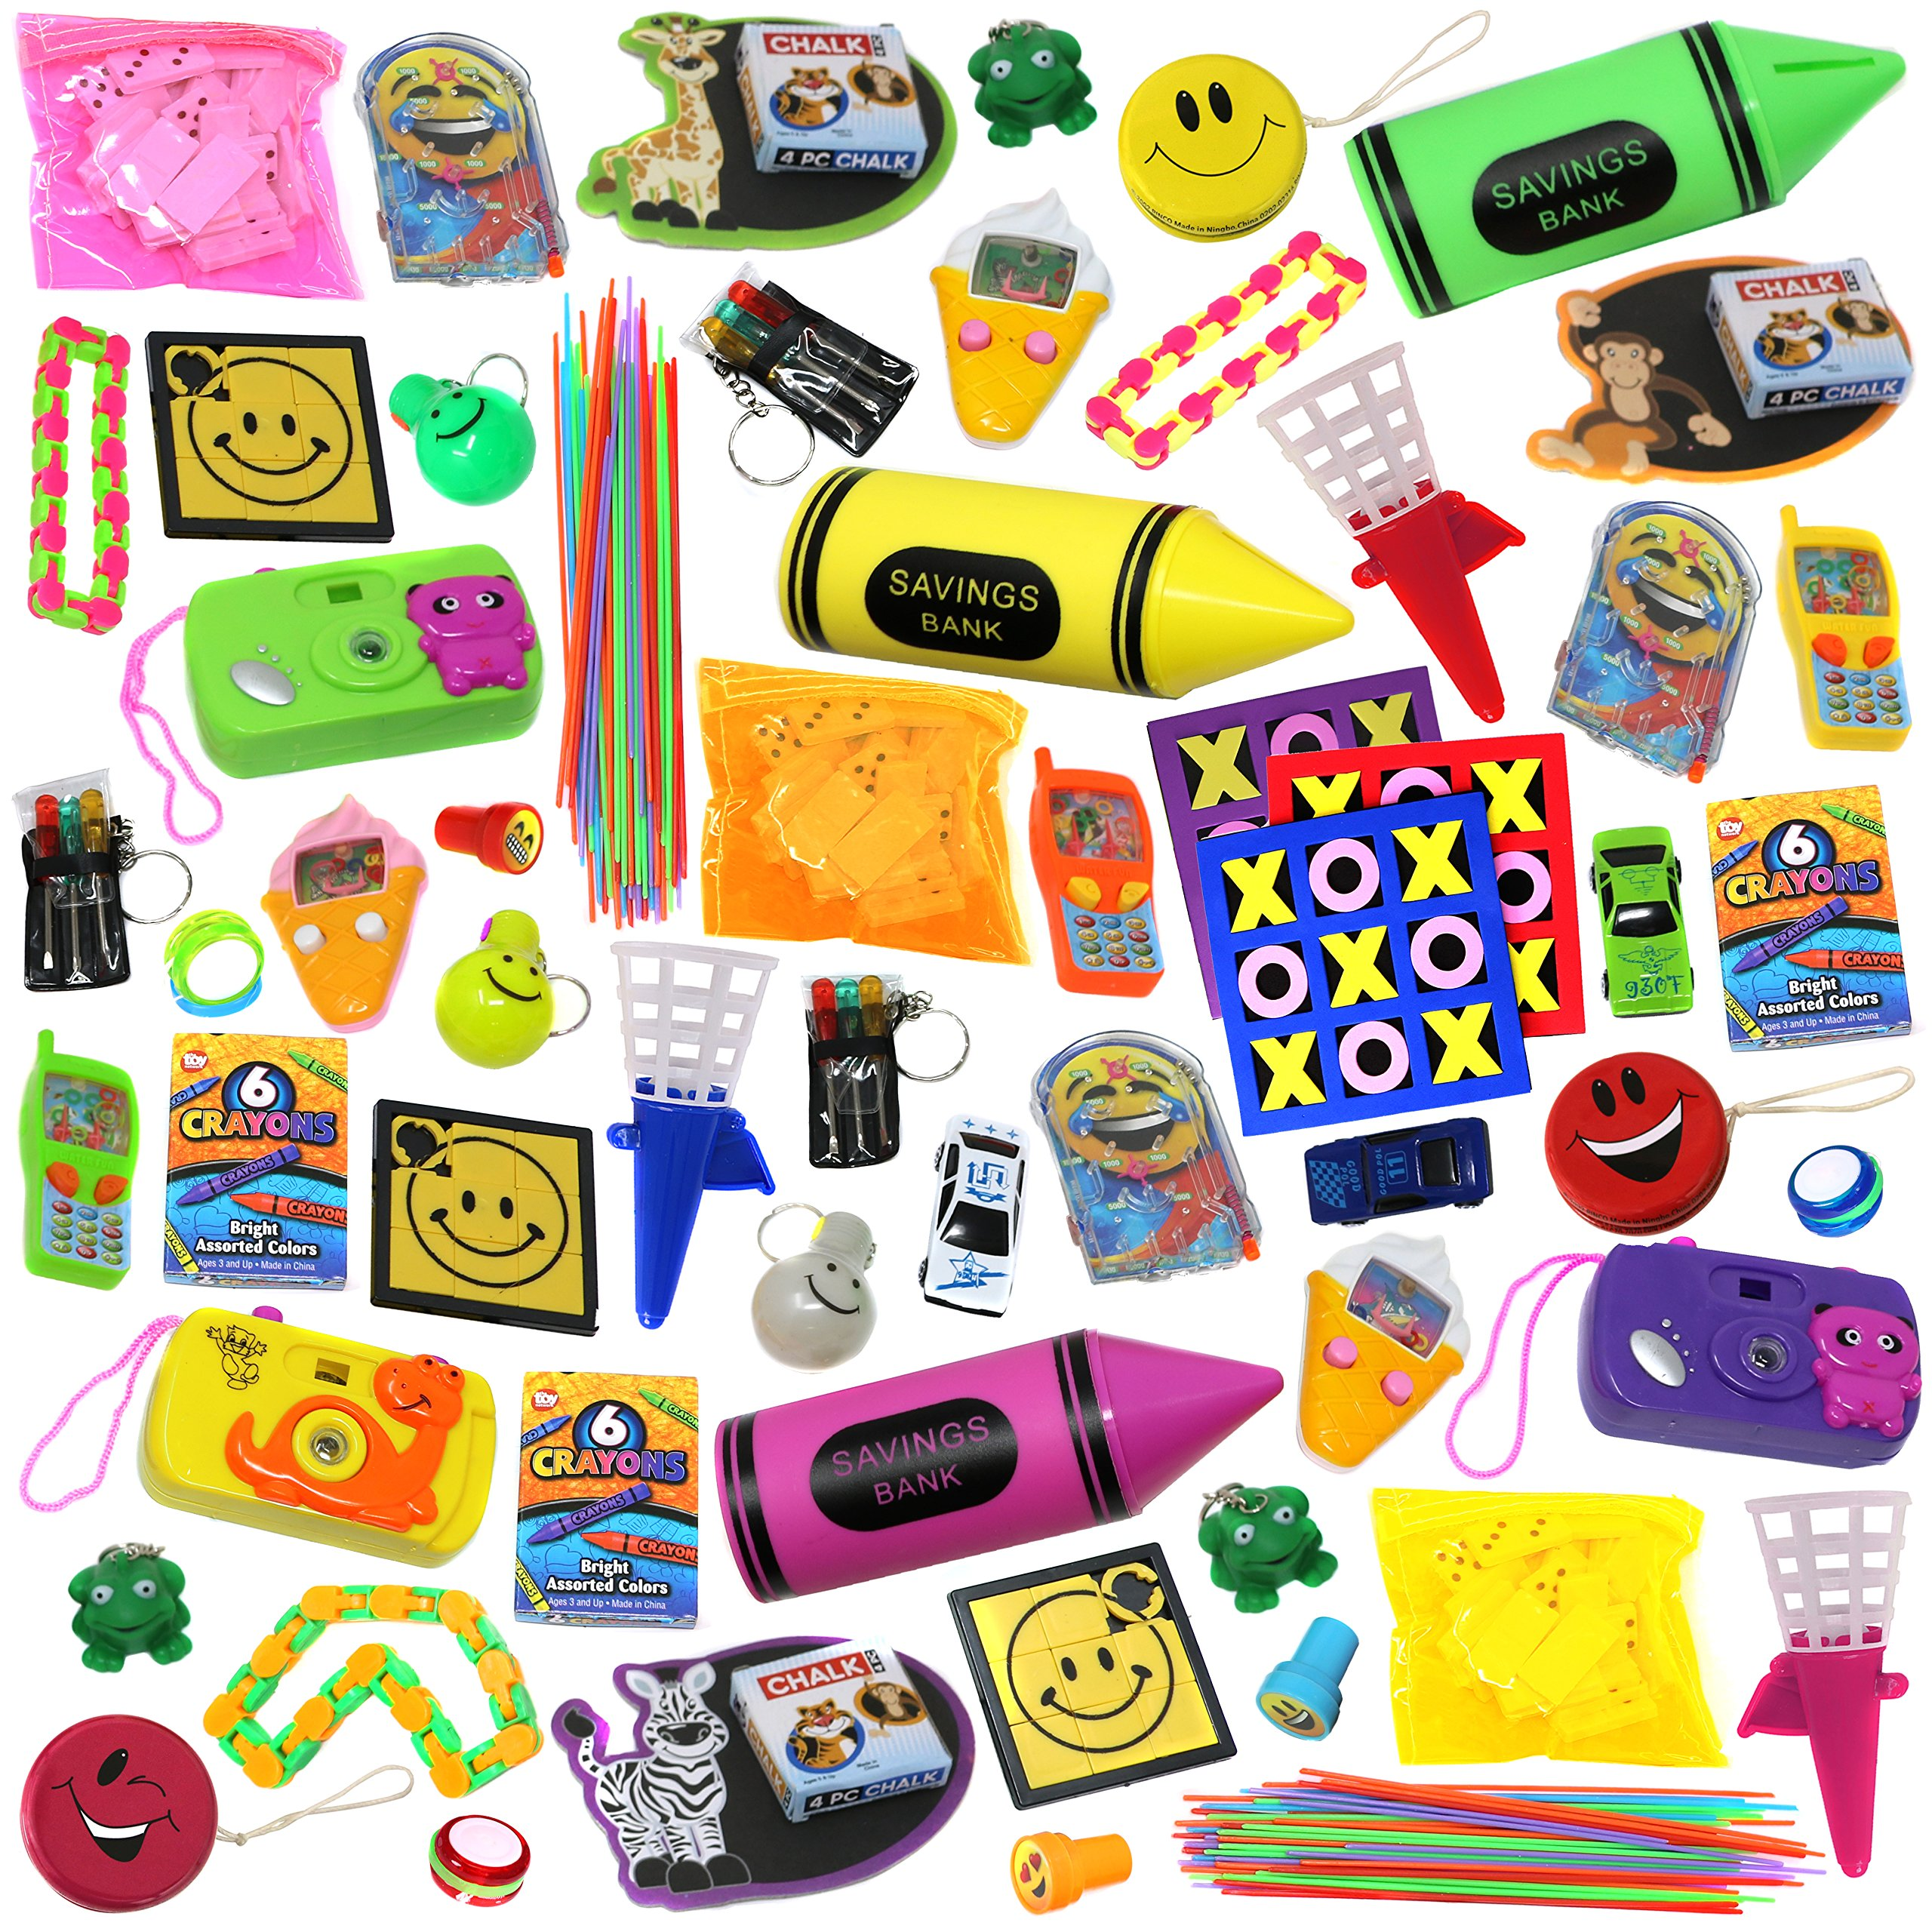 Smart Novelty Jumbo Party Favors Pack of Exciting Toys, Prizes and small games beloved by Kids. Great for Party Giveaways, School Classroom Rewards and Carnival Events (Made and EXCLUSIVELY sold